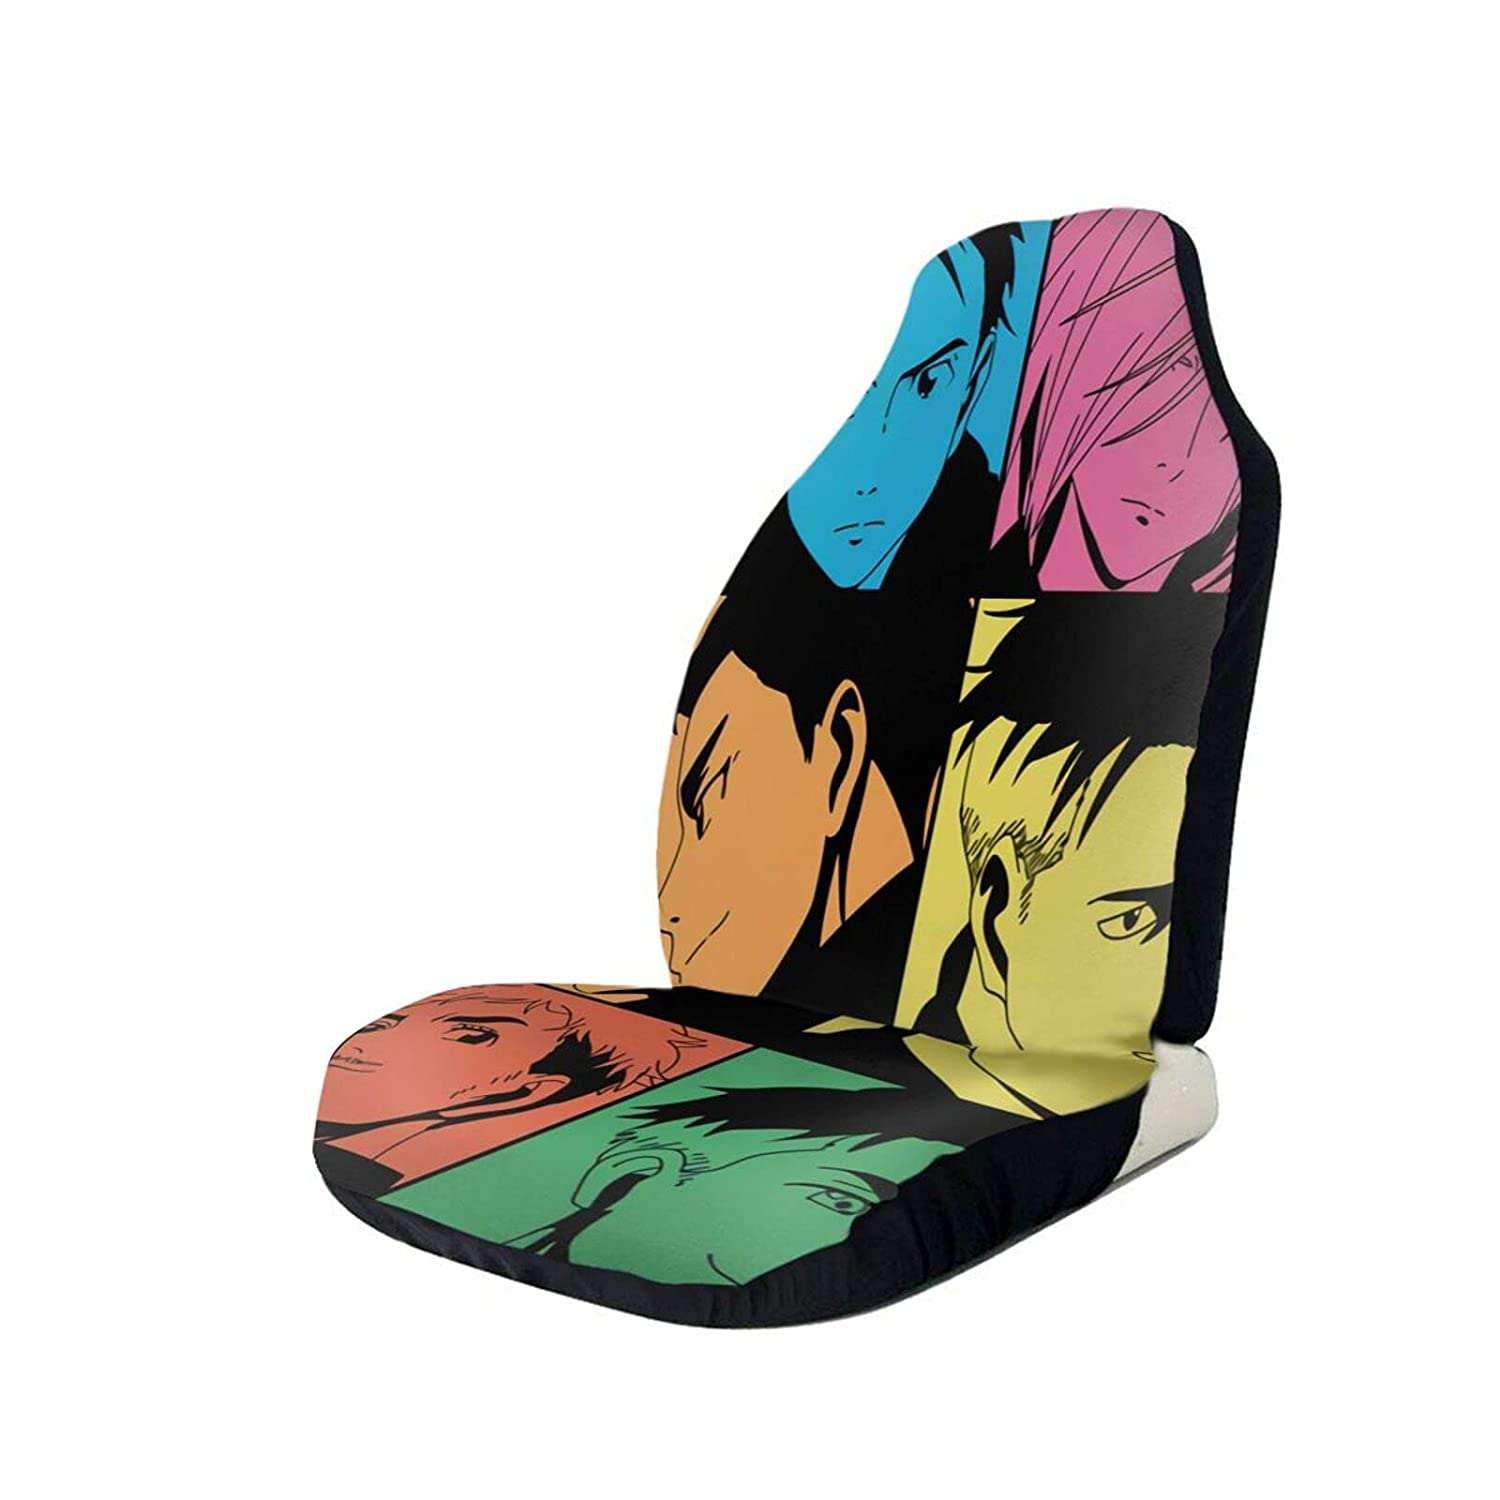 Yuri on Ice Colorado Springs Mall Anime Car Seat Protector w Popular product Vehicle Front Covers